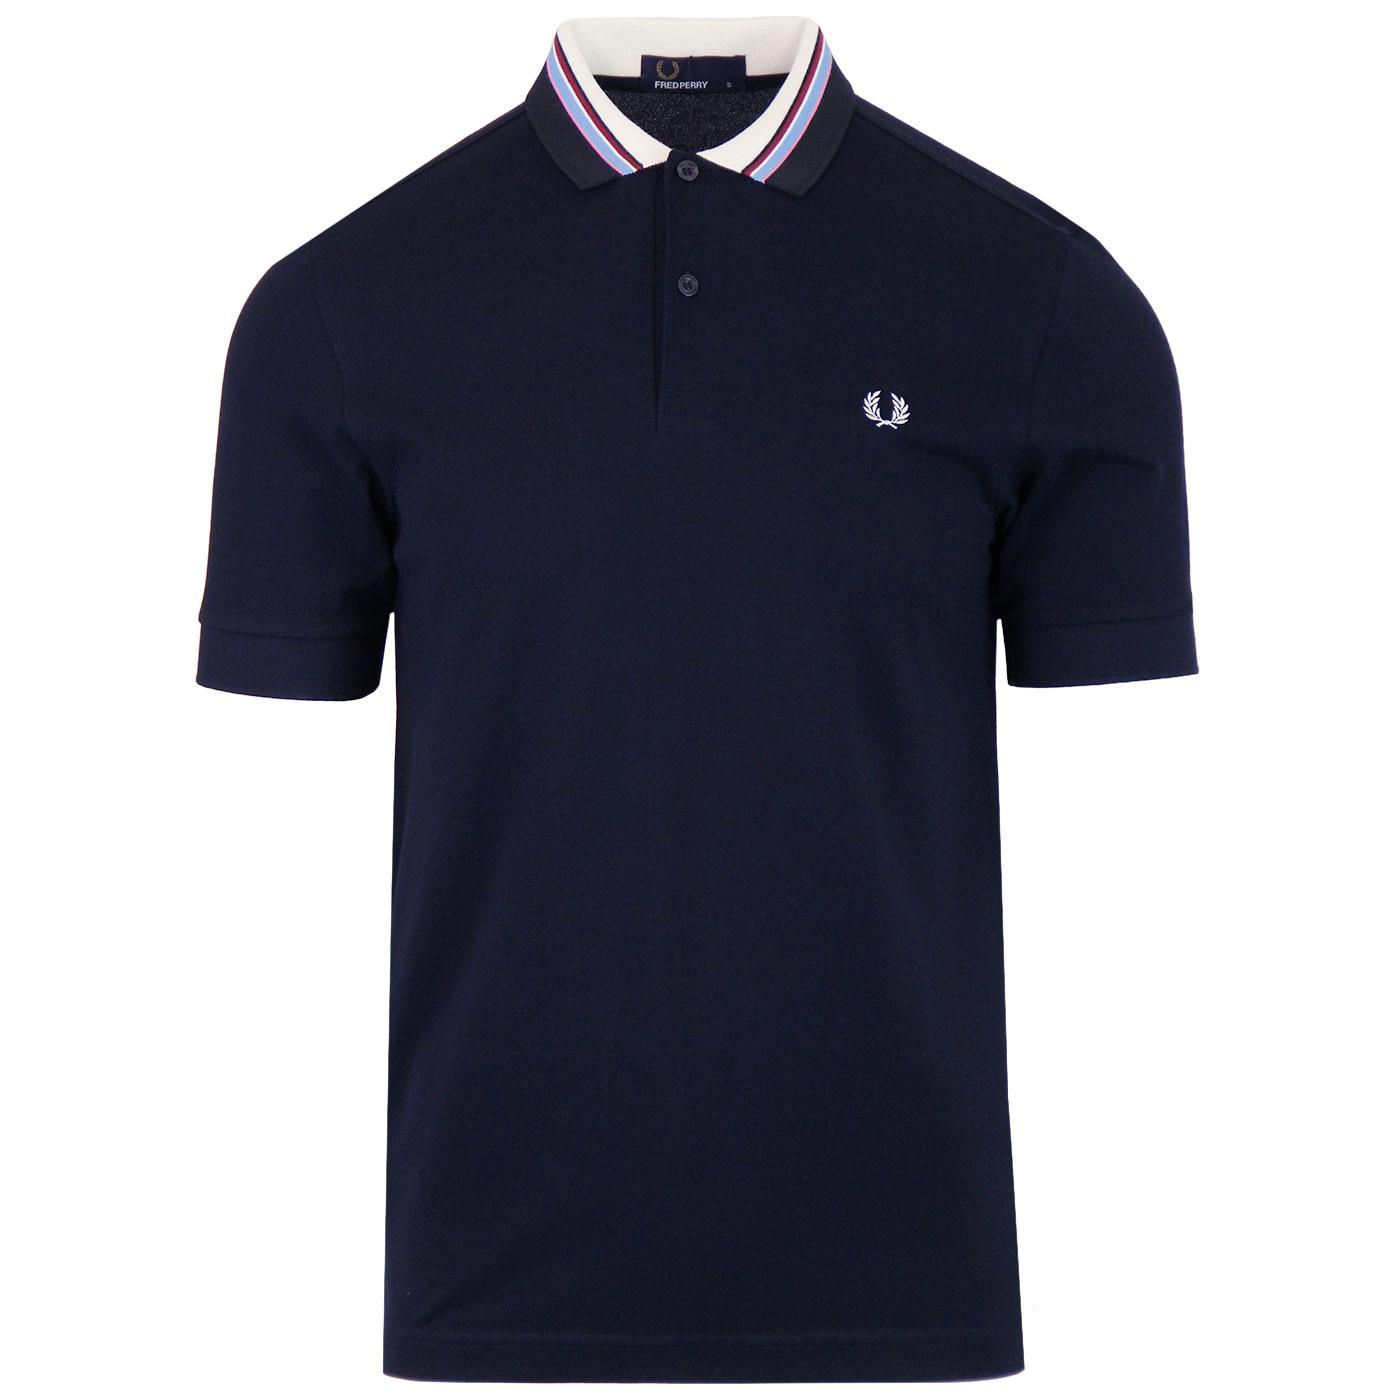 FRED PERRY Retro Mod Multi Stripe Collar Polo N